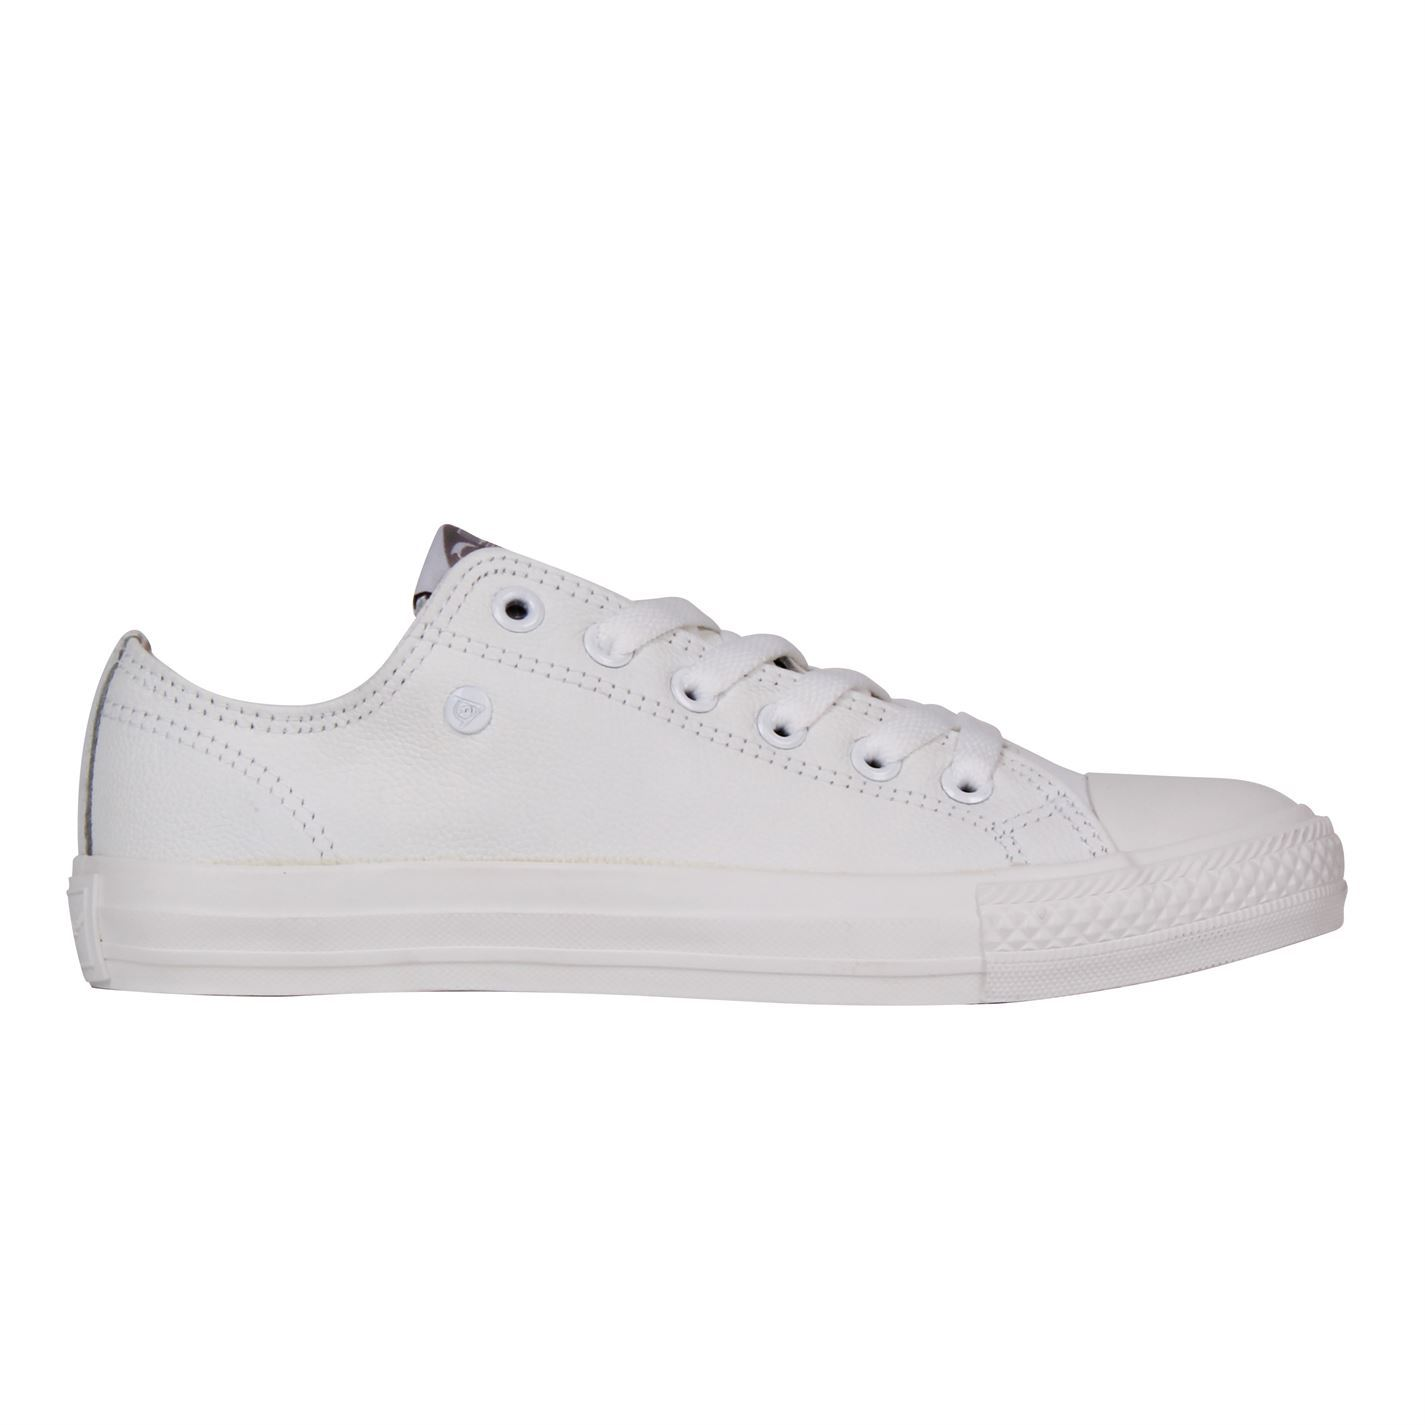 da2a58f619278 Details about Dunlop Womens Leather Low Trainers Sneakers Shoes Lace Up  Tonal Stitching